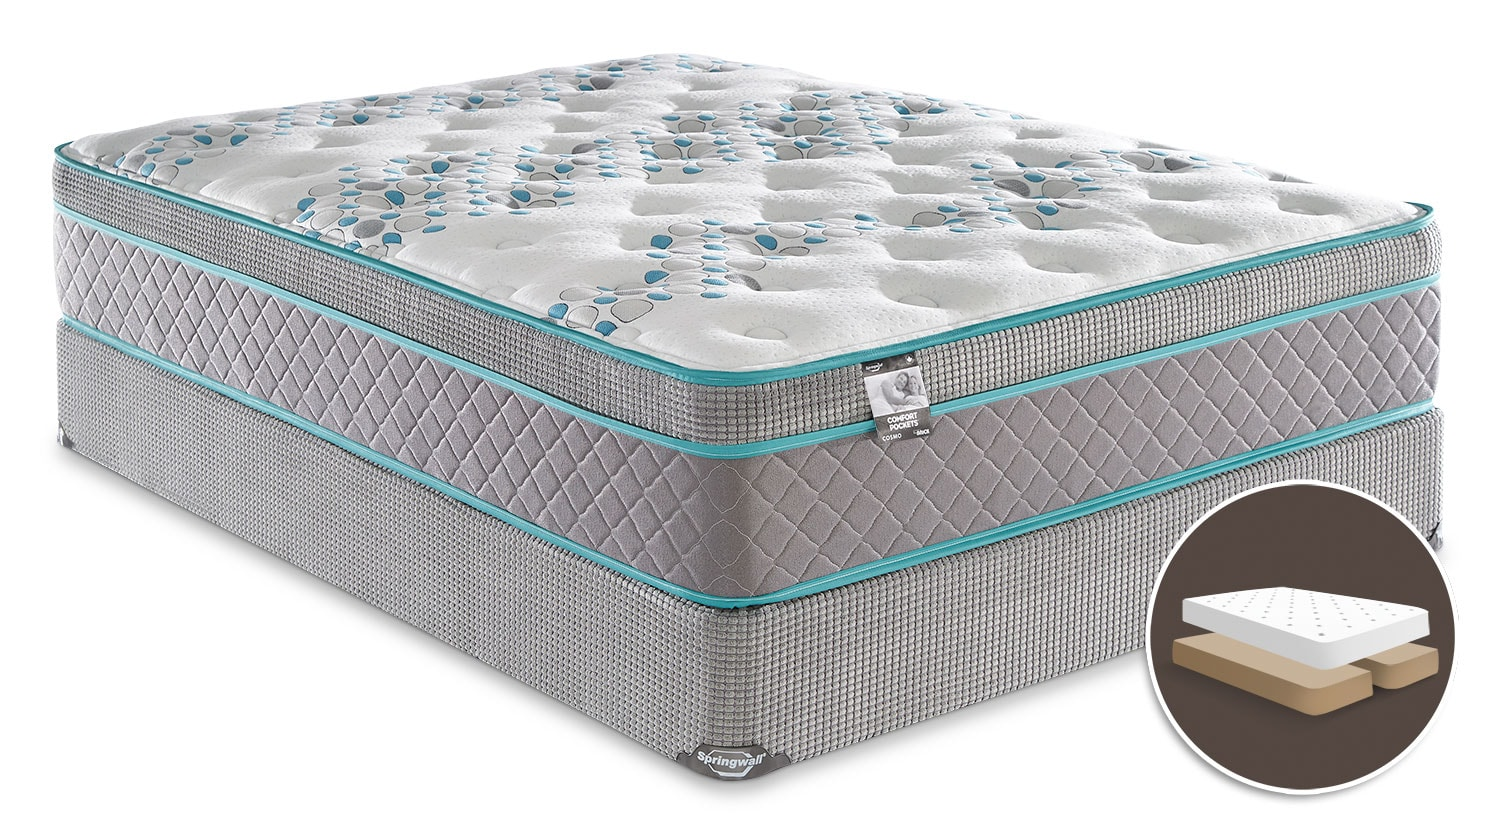 Mattresses and Bedding - Springwall Cosmo Euro-Top Queen Mattress with Split Boxspring